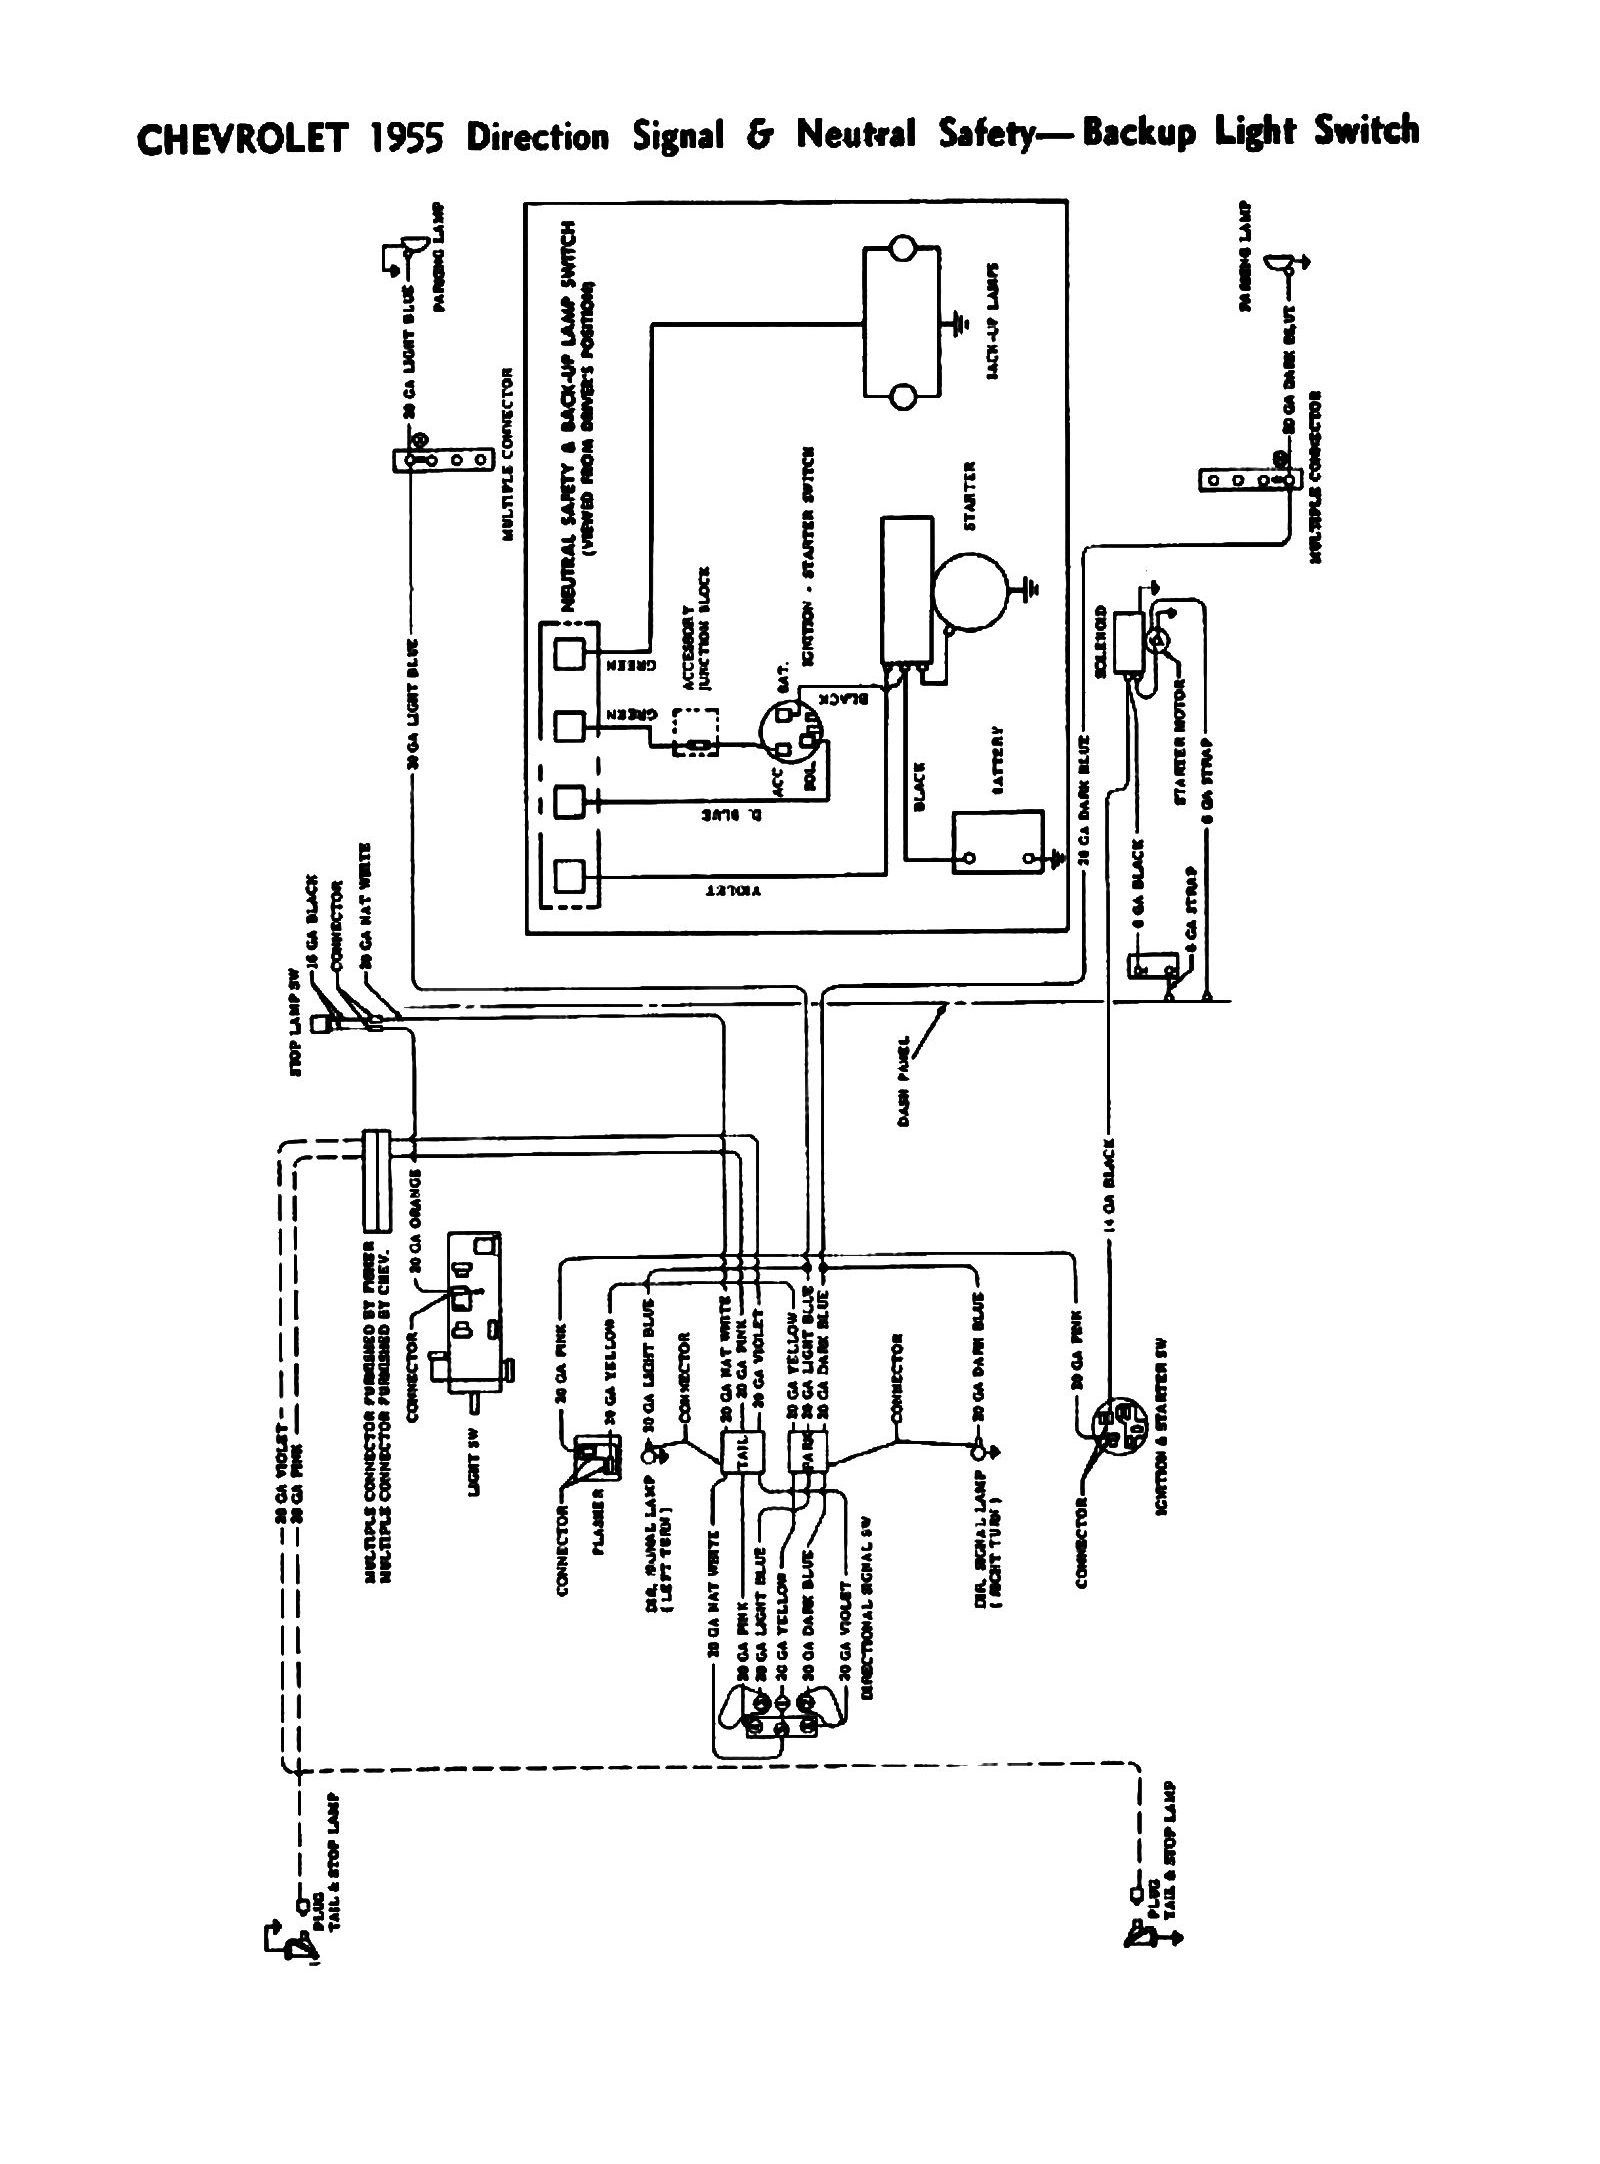 Trailblazer Heater Wiring Diagram Auto Electrical 1979 Chevy Cargo Van Fuse Box Related With